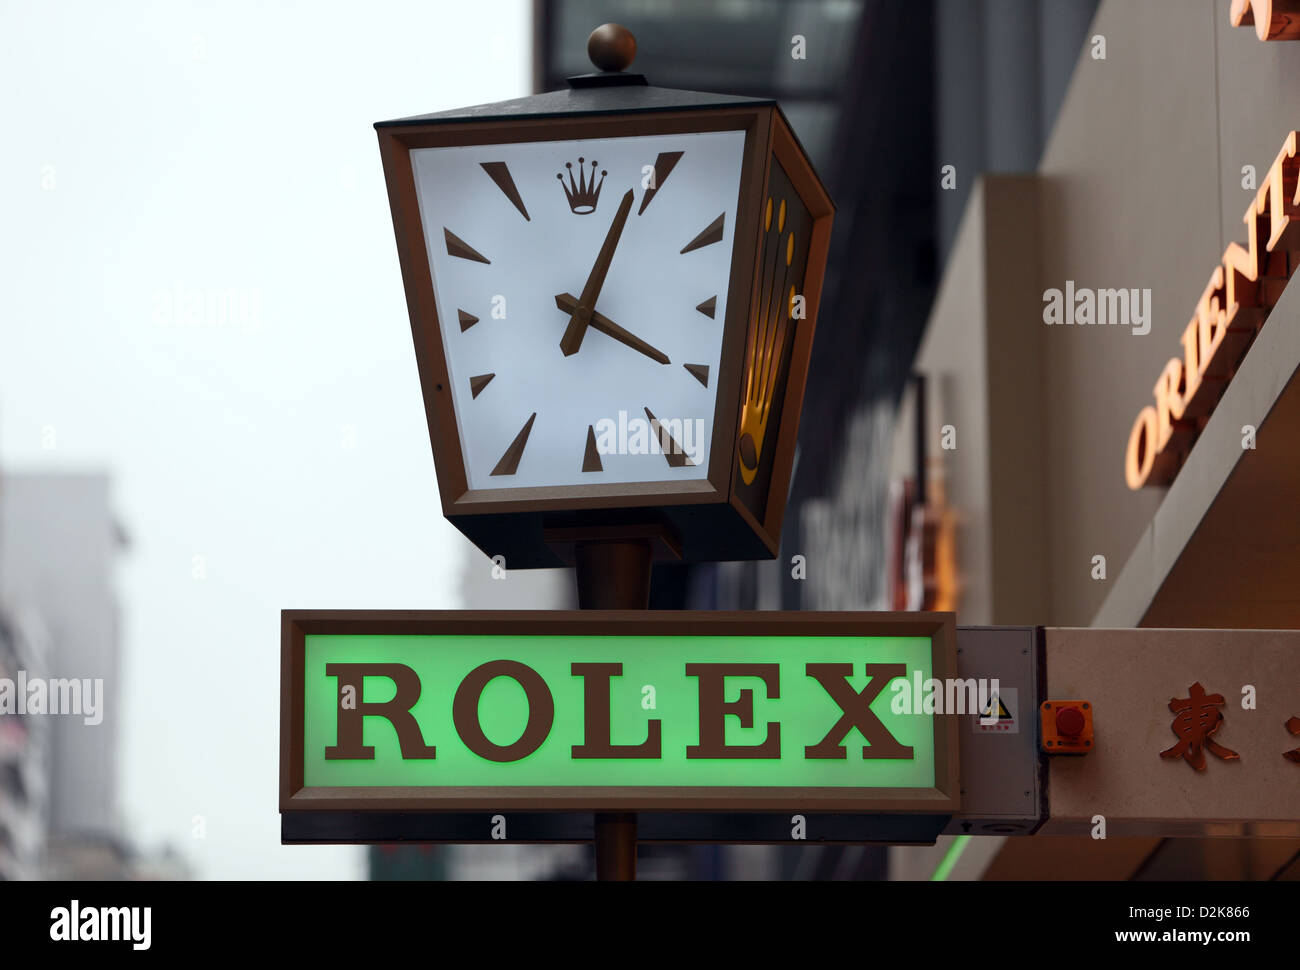 Hong Kong, China, Rolex clock and lettering from a drainpipe - Stock Image